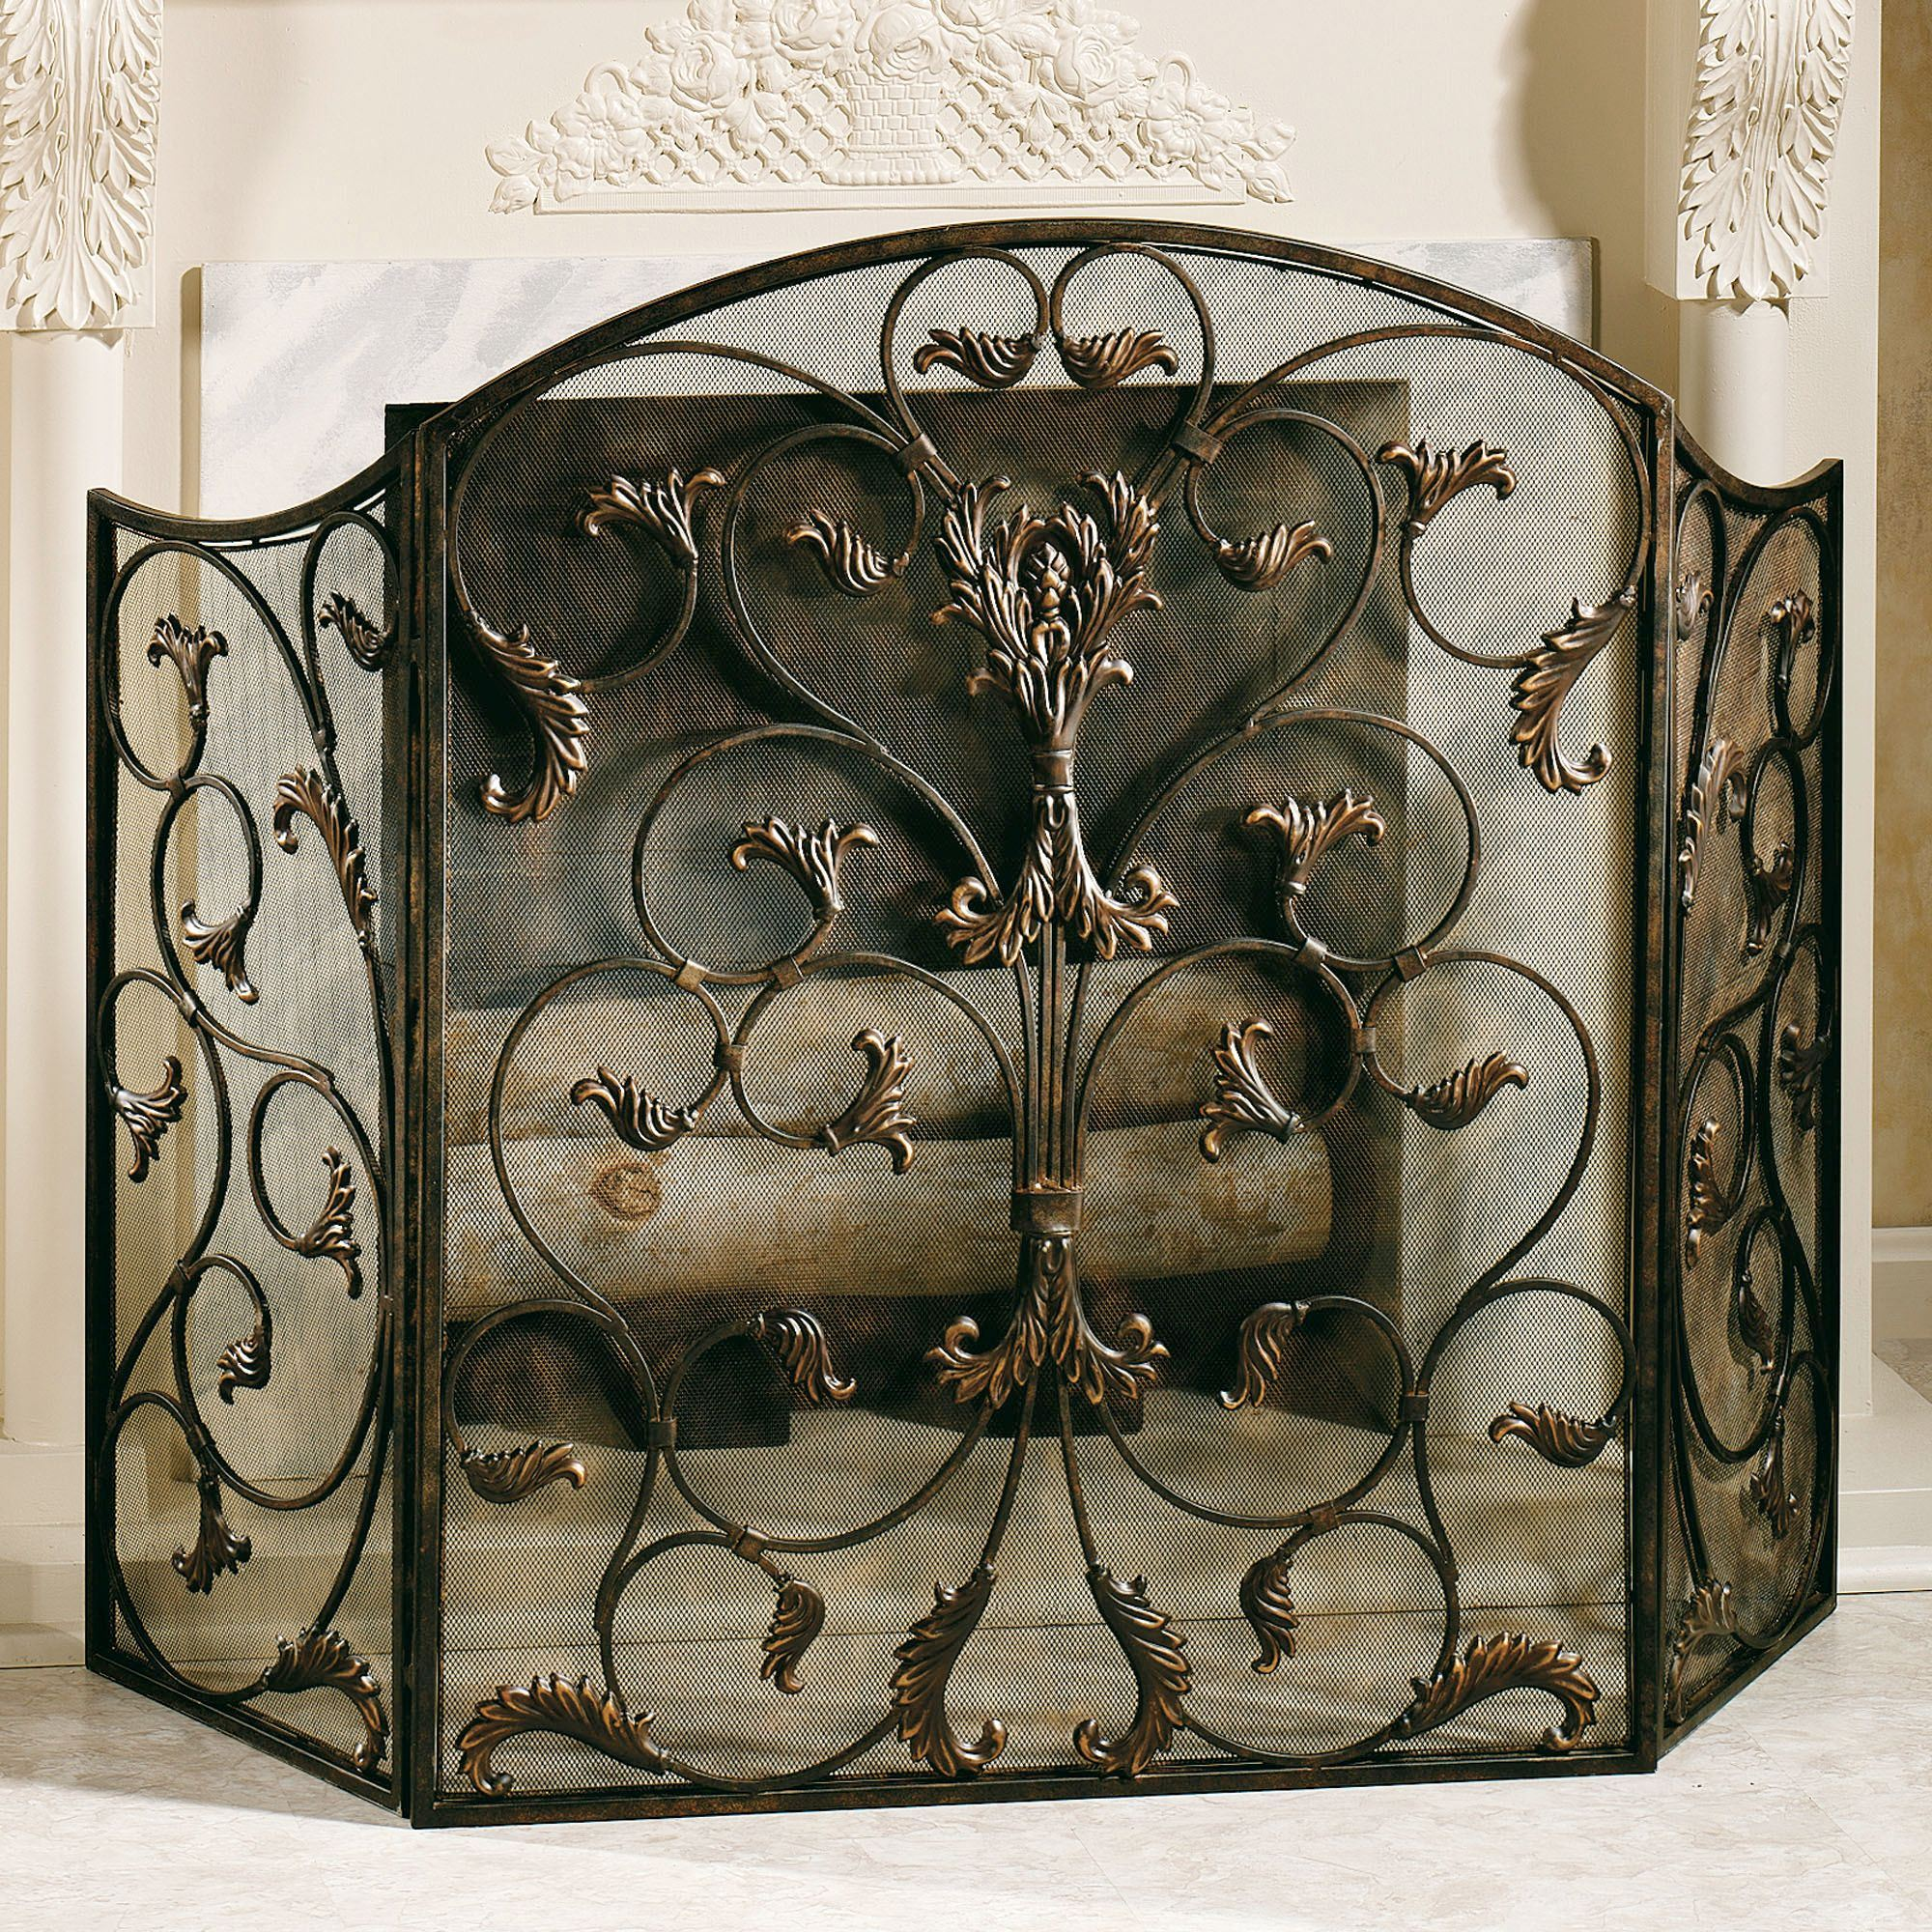 The charming Ashville Fireplace Screen